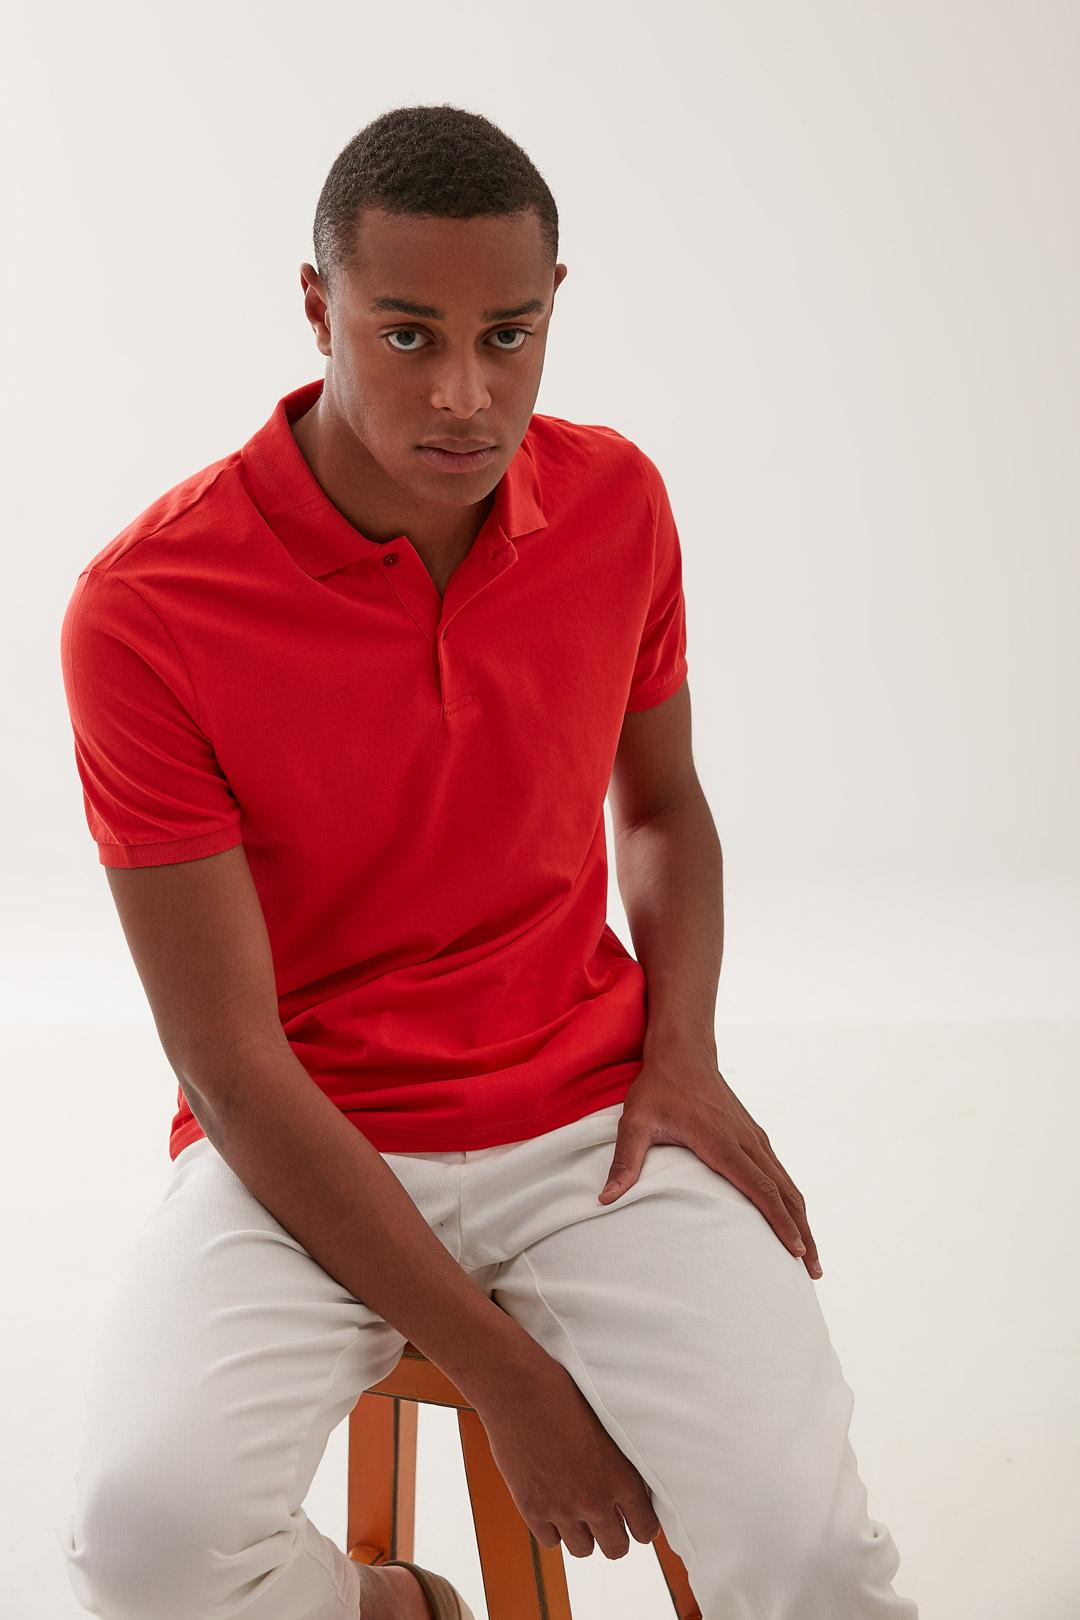 Jeff Solid Polo S/S T-shirt